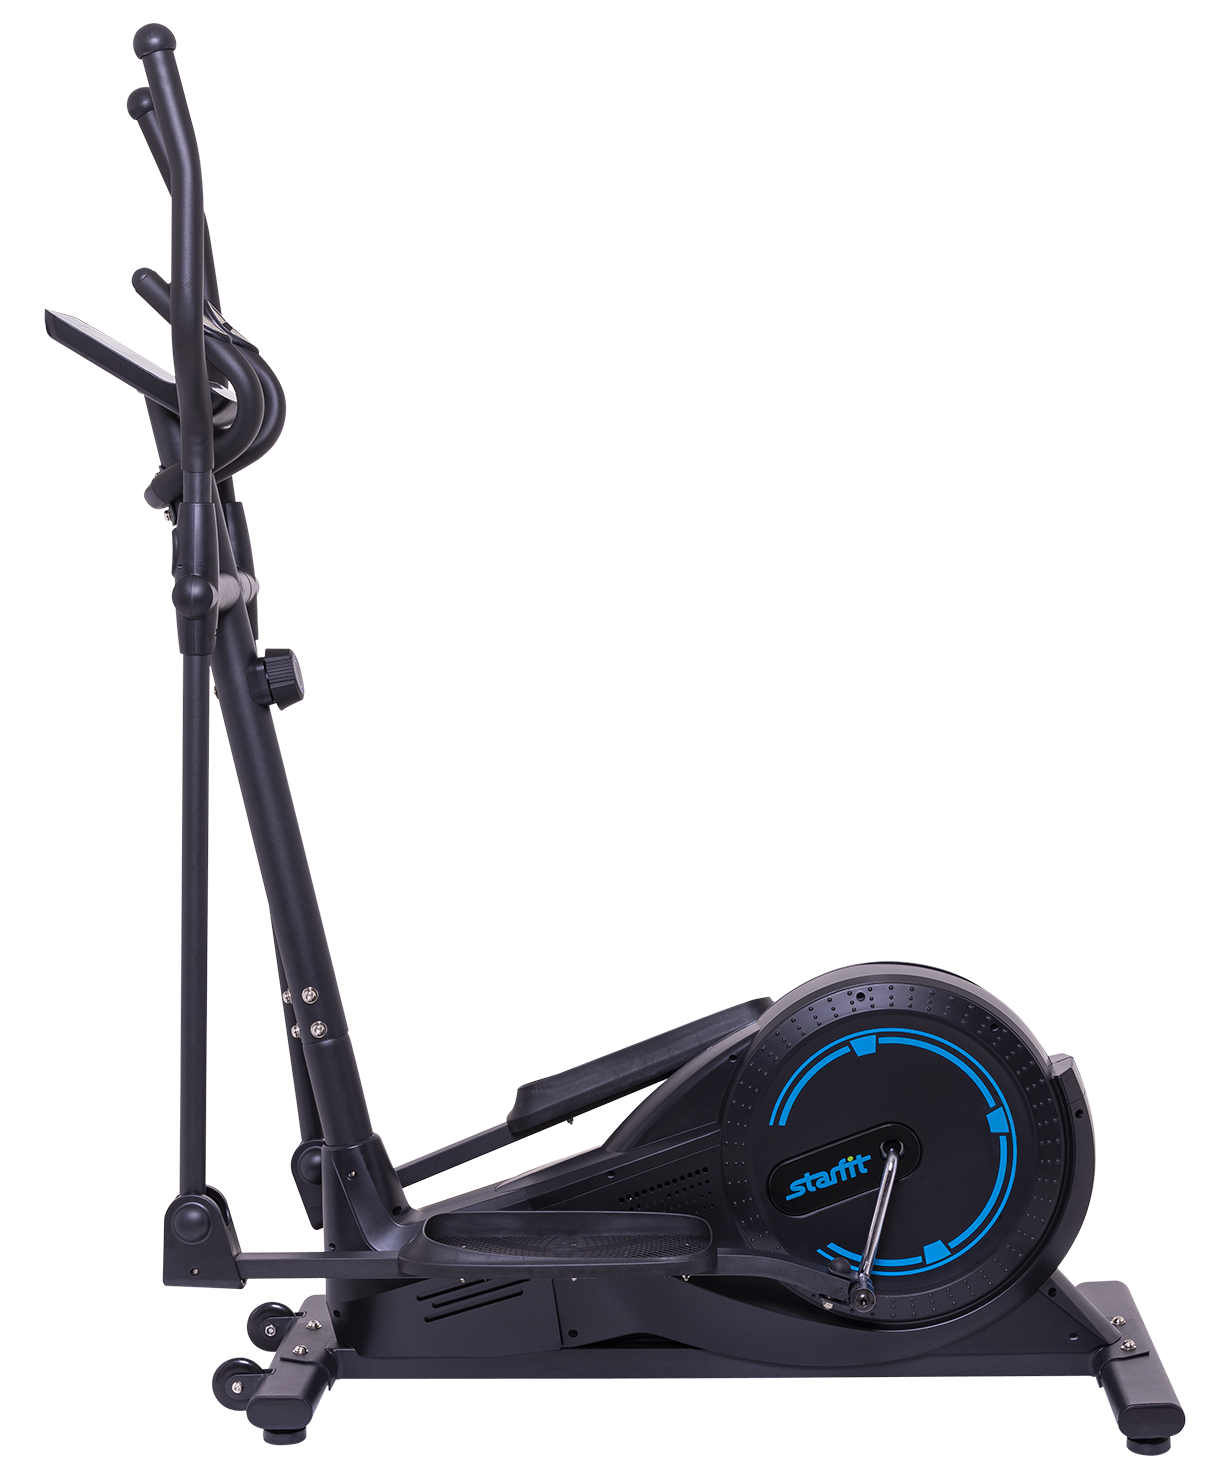 uploads gym equipment gym equipment PNG37 5